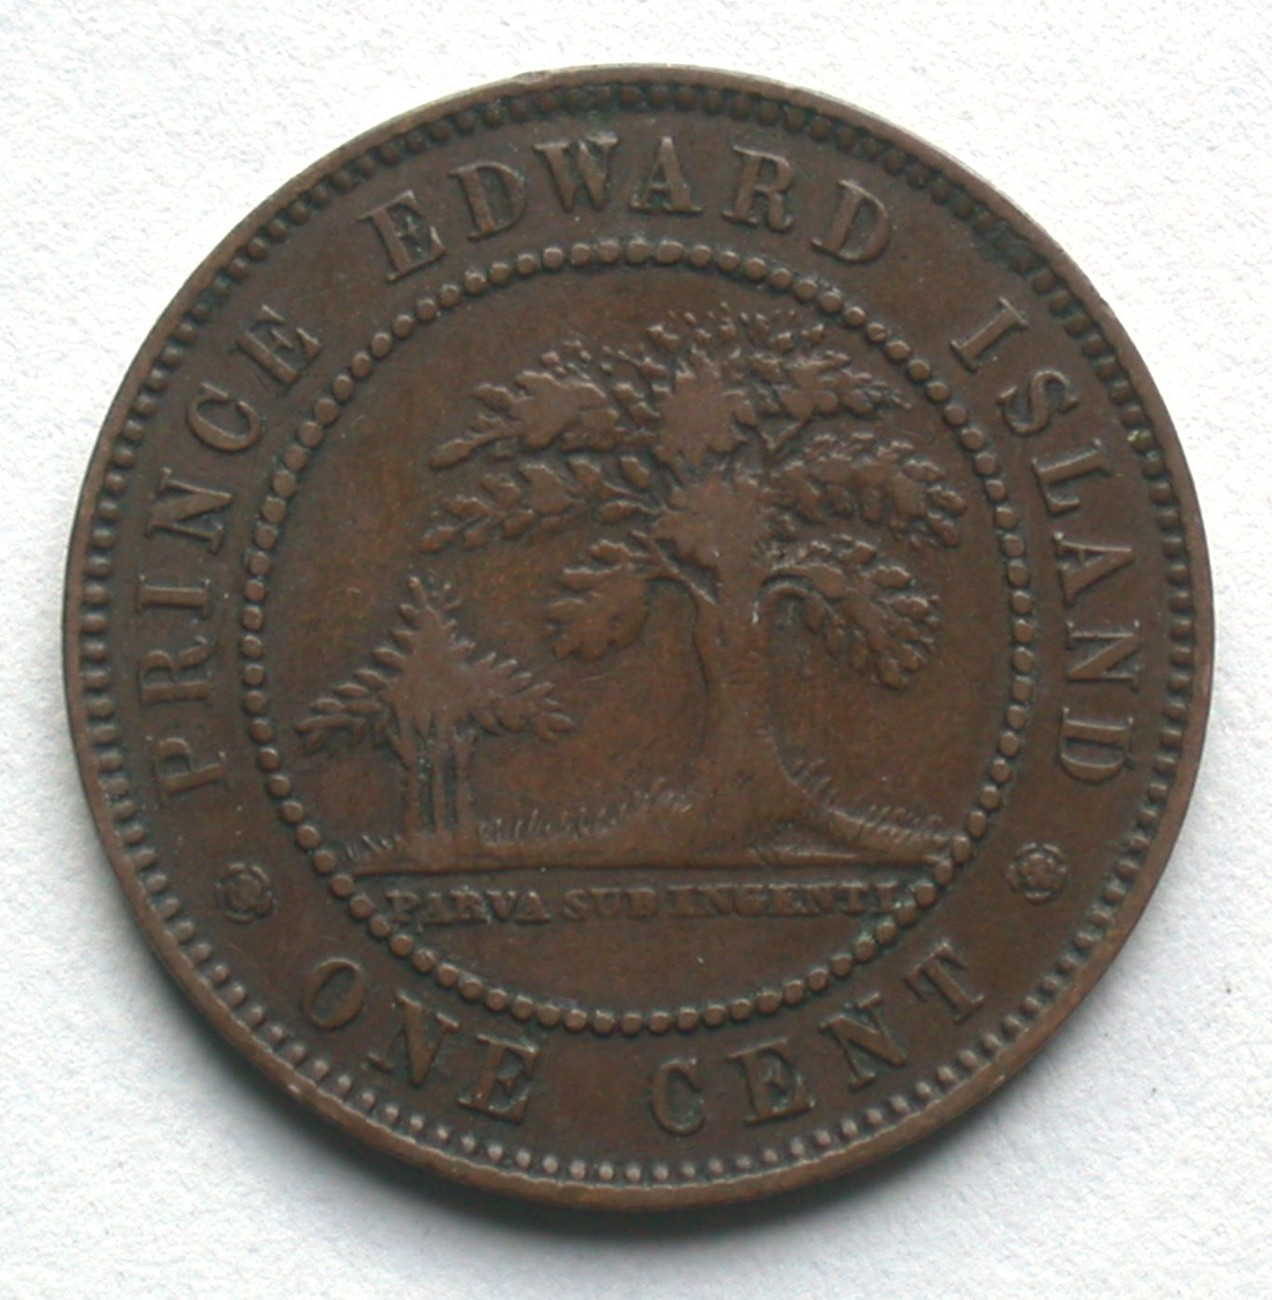 1871 Prince Edward Island One Cent Coin Queen Victoria 1 PEI image 4